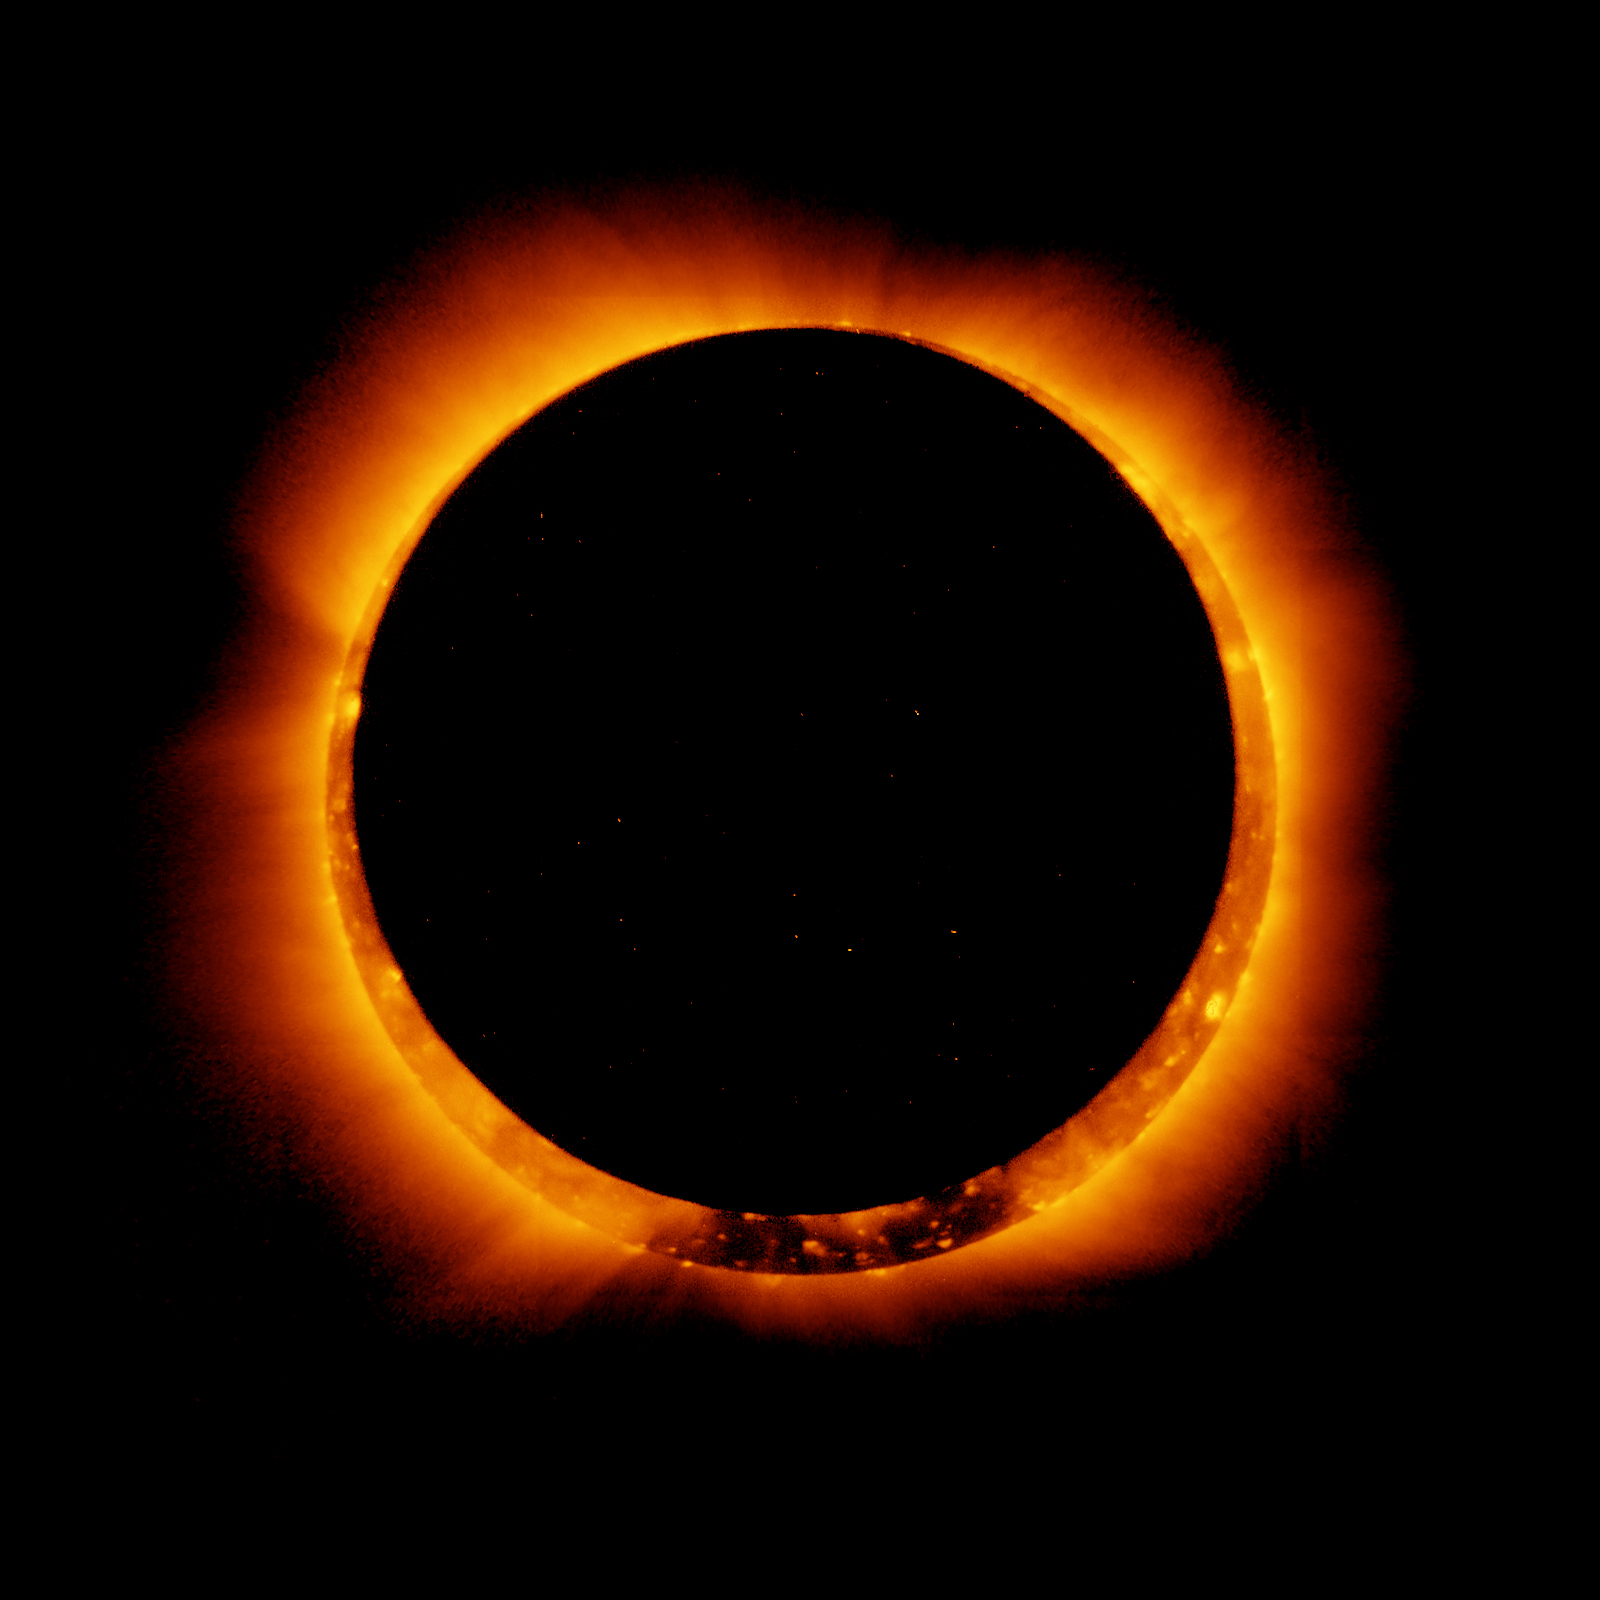 An annular, not total, solar eclipse as captured by the Hinode solar mission. Photo courtesy NASA Goddard Space Flight Center.